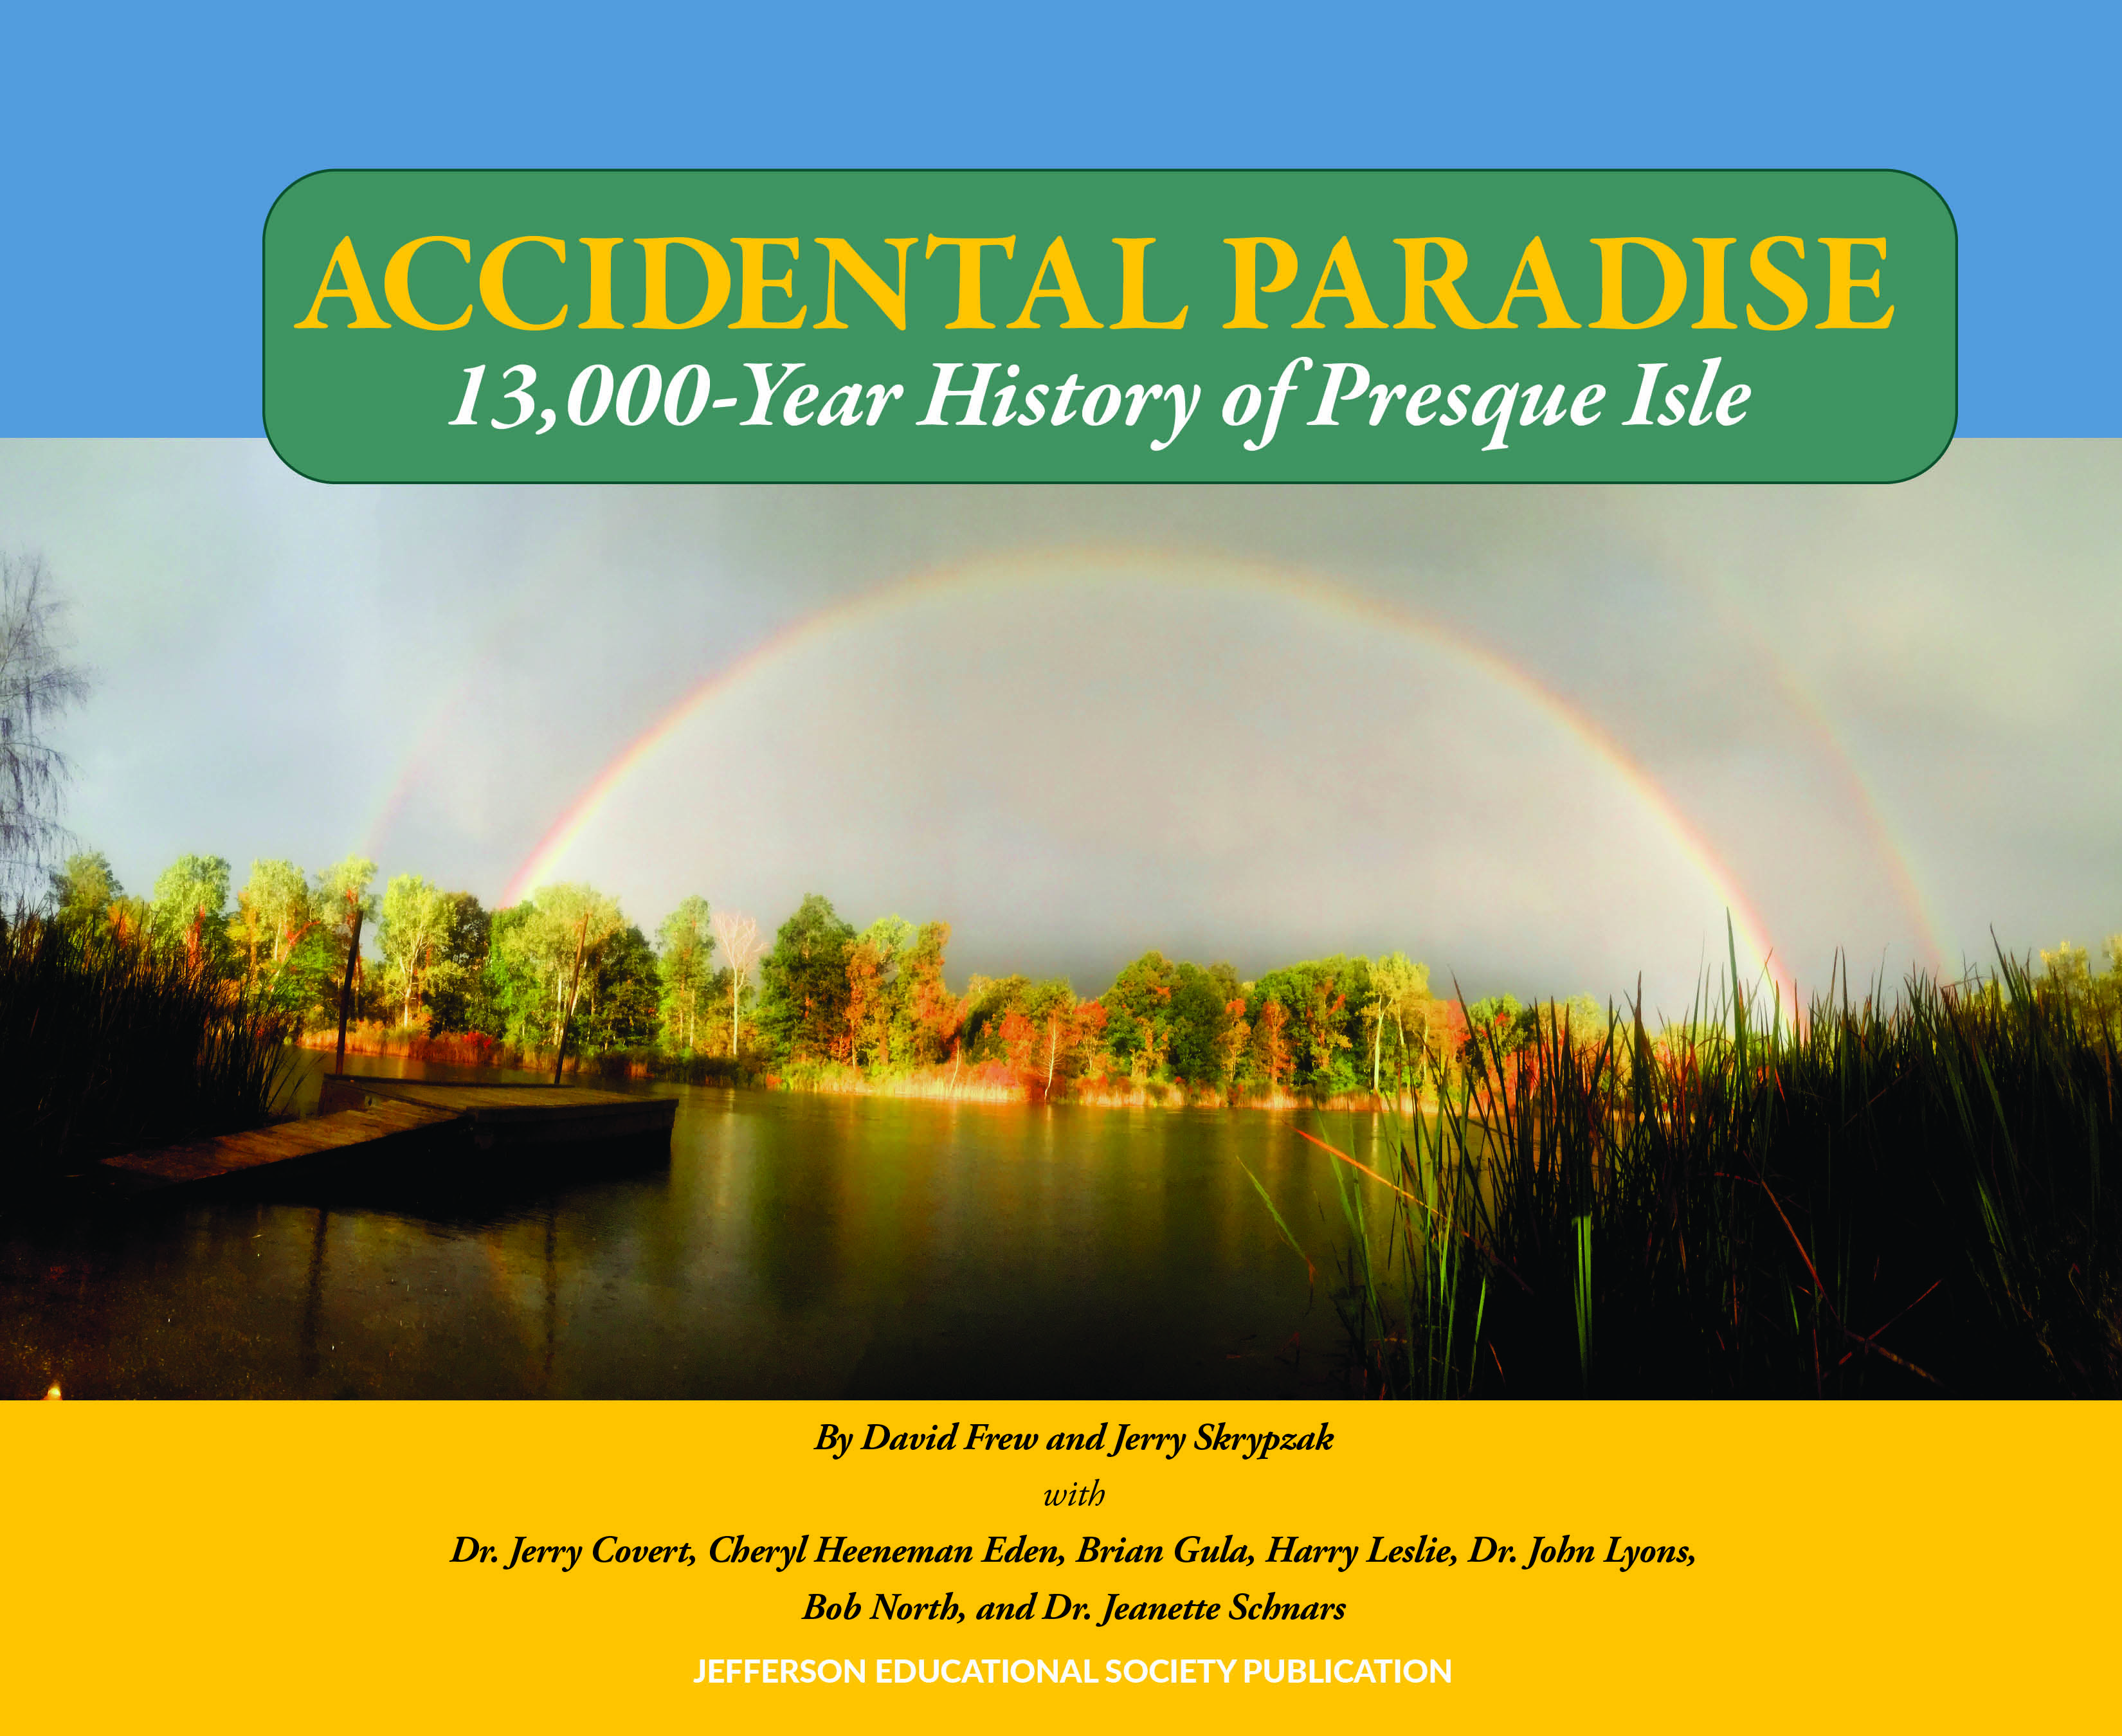 Accidental Paradise 13,000-Year History of Presque Isle By David Frew and Jerry Skrypzak